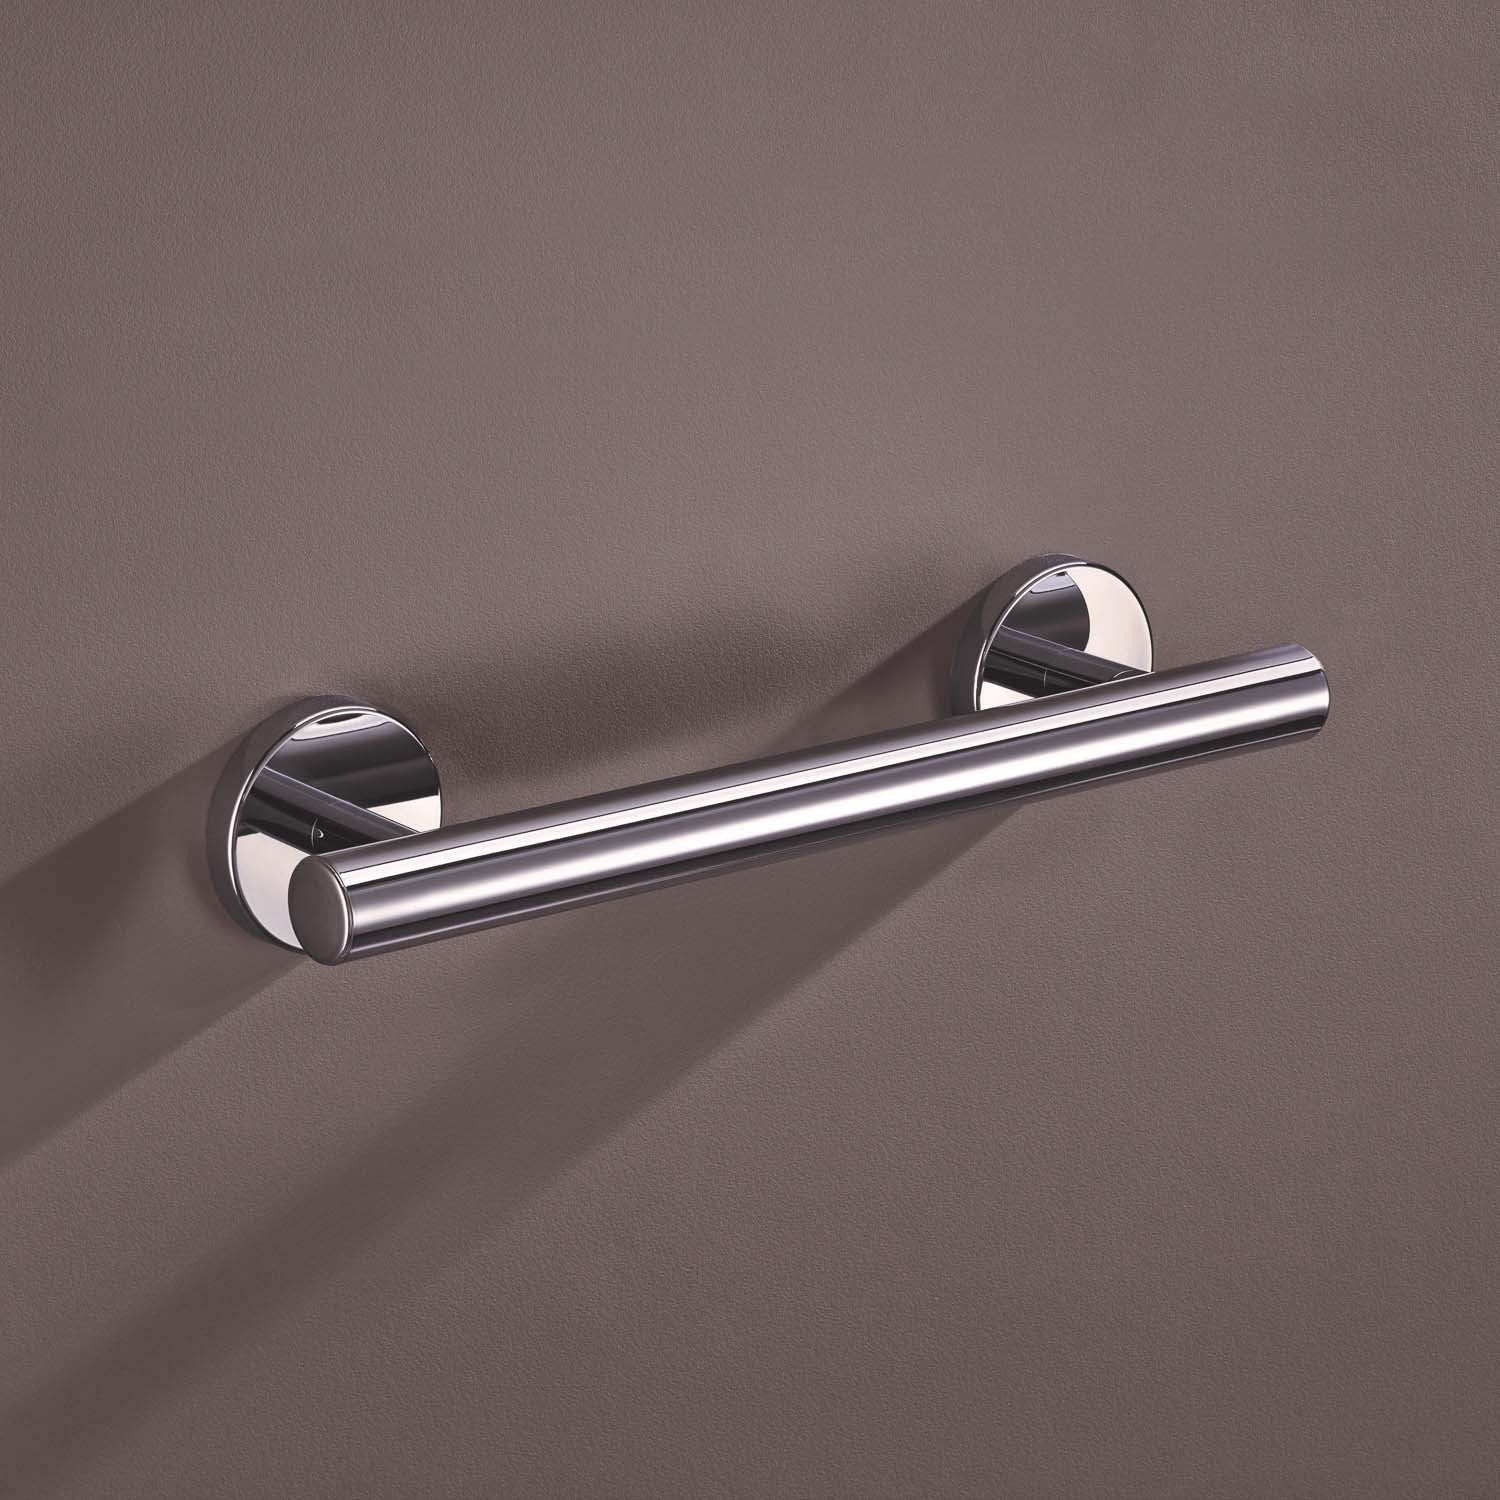 600mm Warm Touch Circula Removable Straight Grab Rail with a chrome look finish lifestyle image